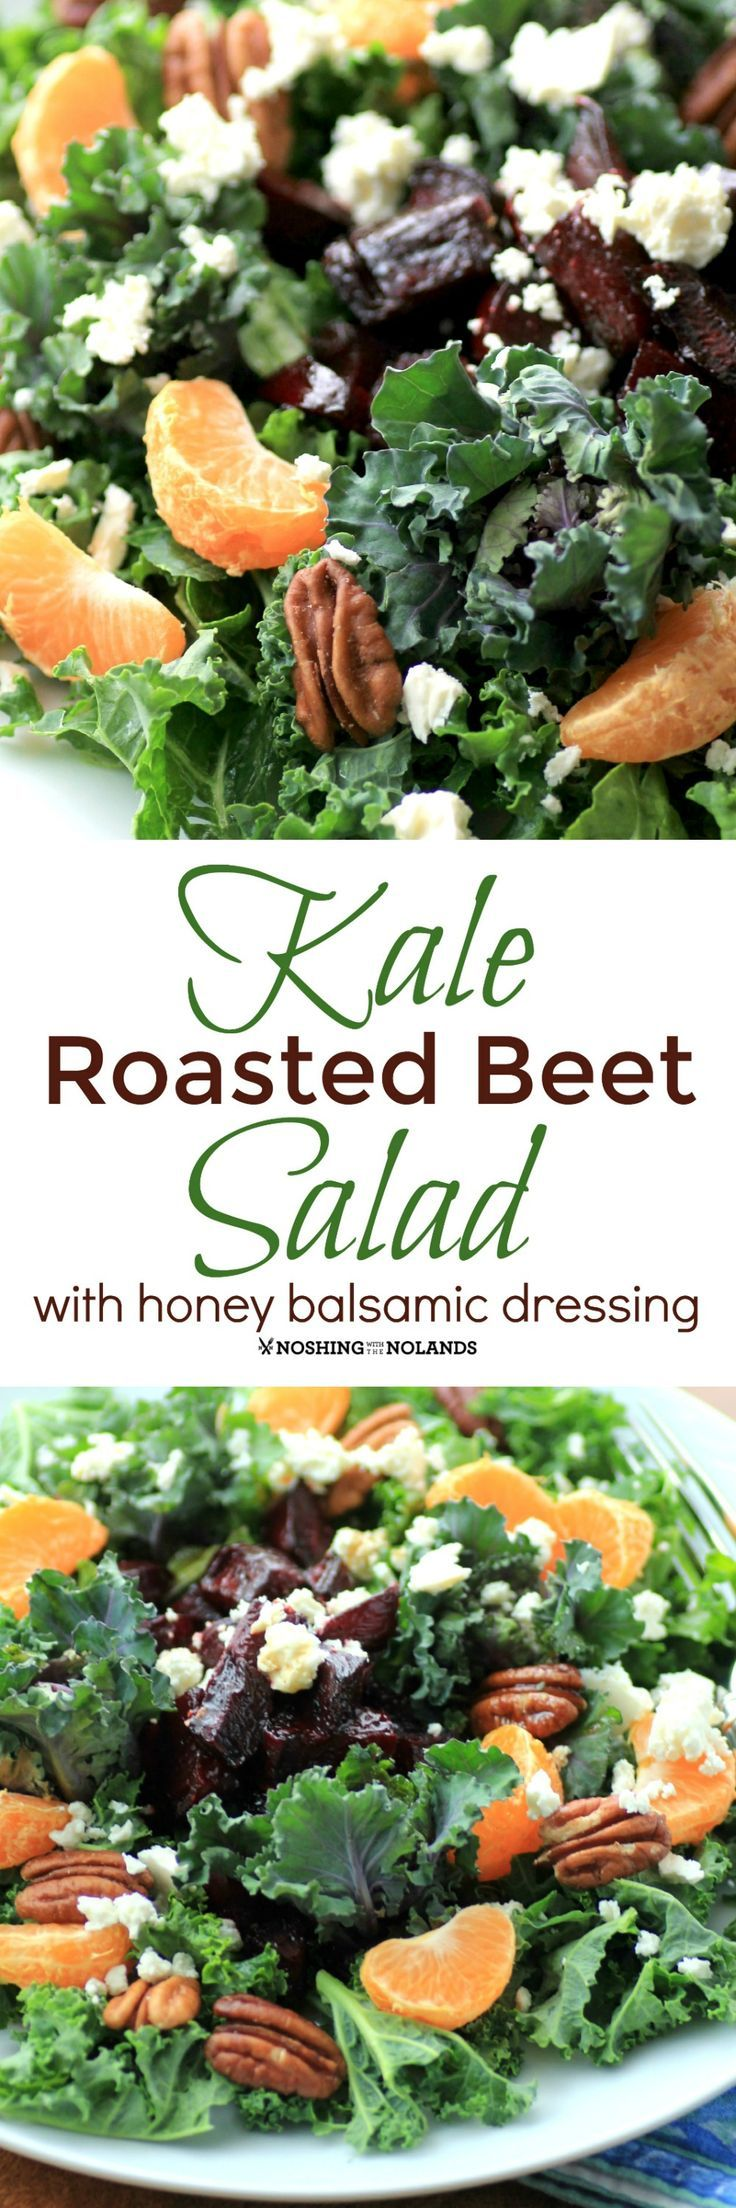 Kale Roasted Beet Salad with Honey Balsamic Dressing by Noshing With The Nolands is a heart healthy dinner salad that everyone will be raving about! #SundaySupper